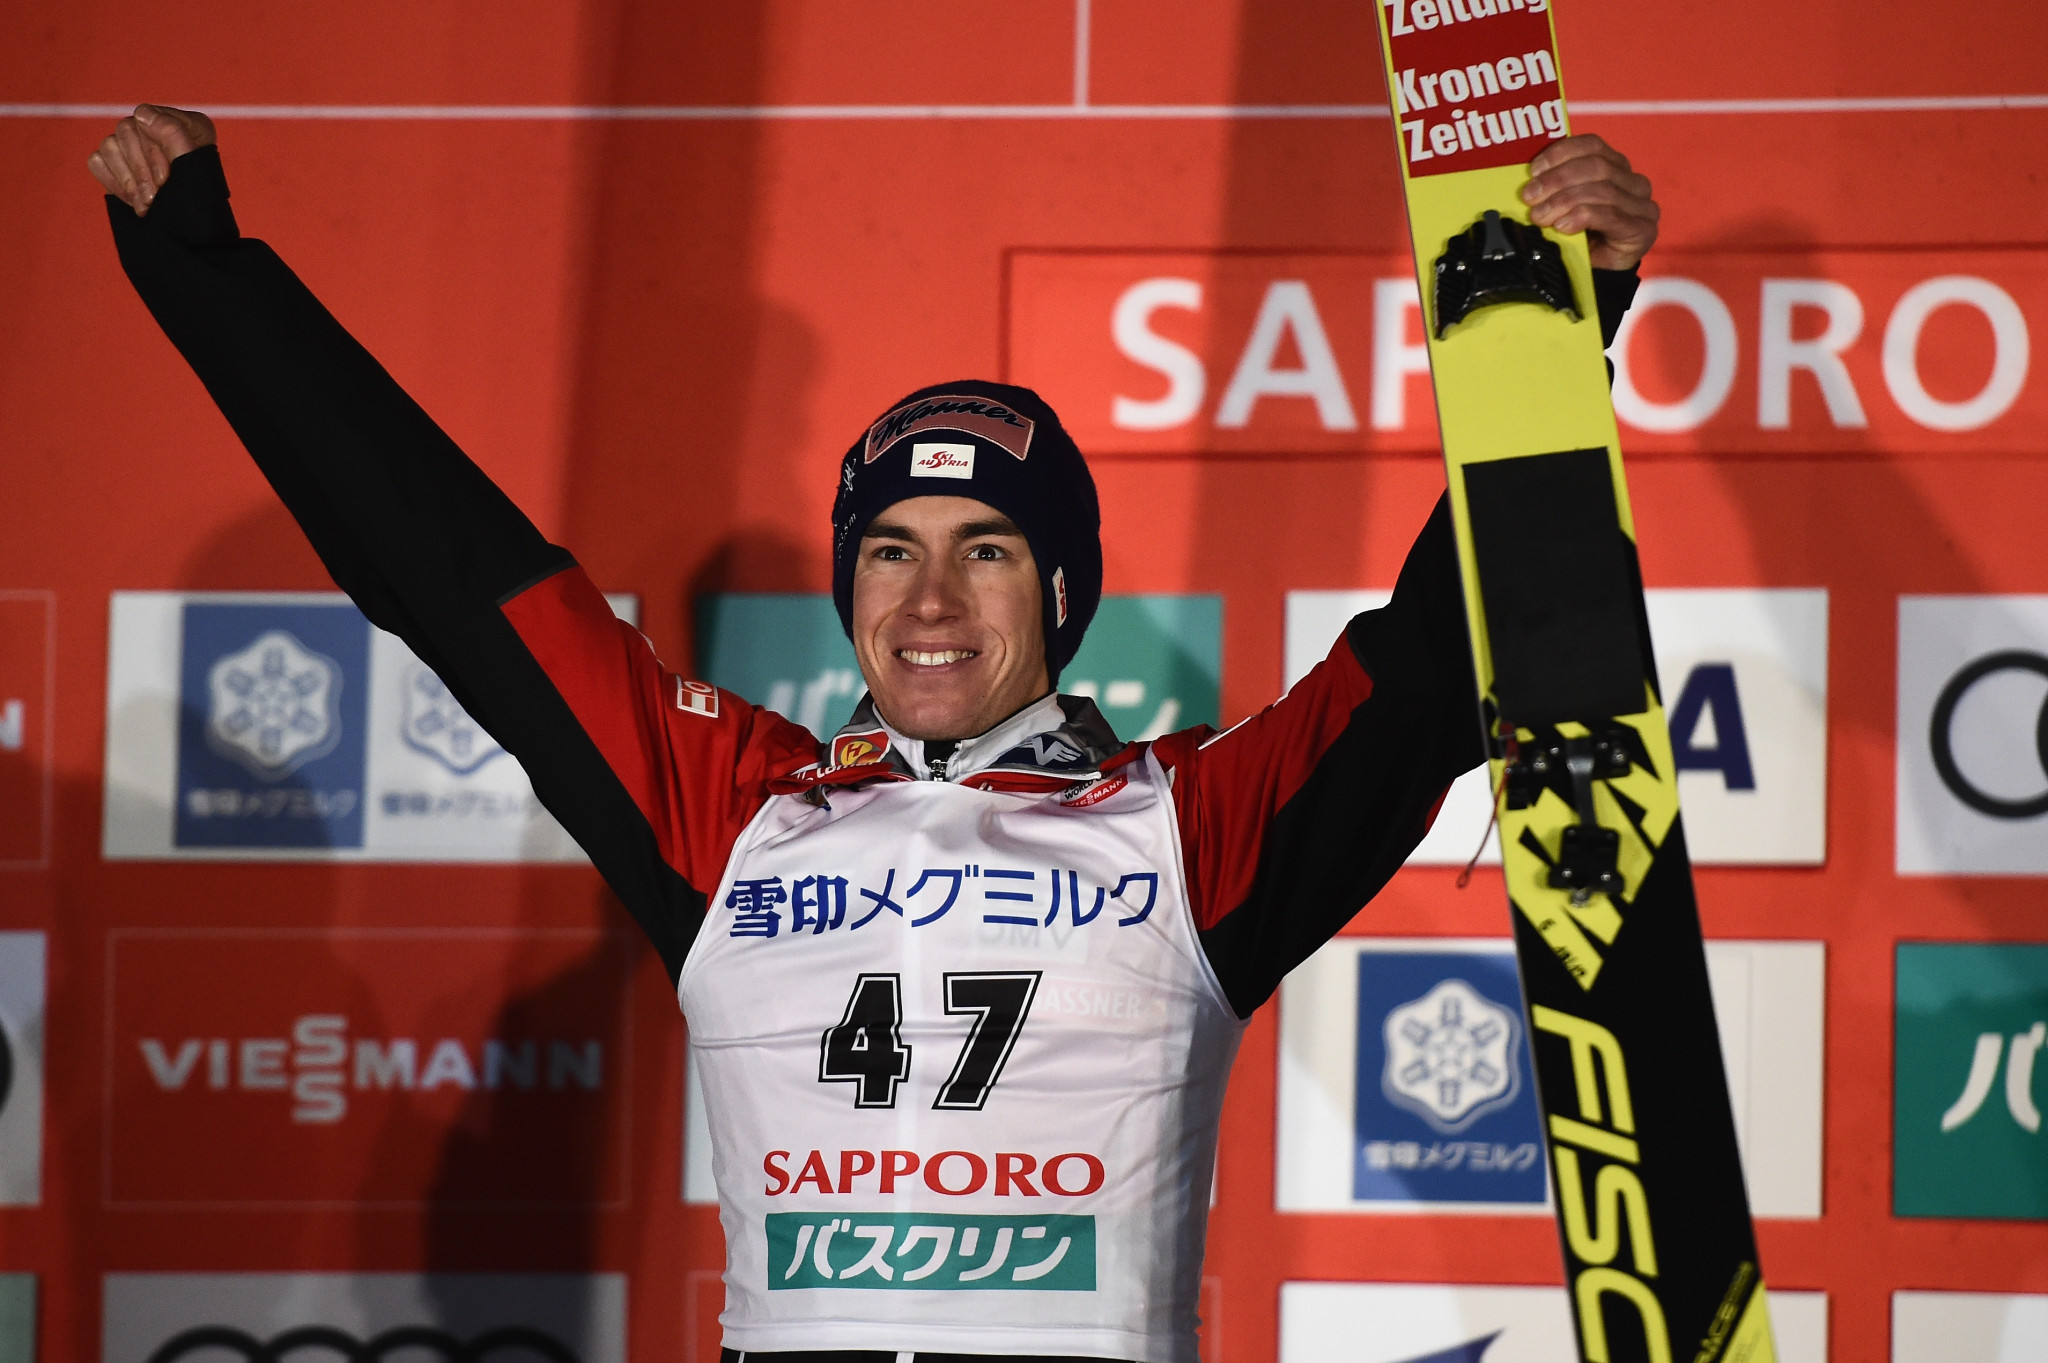 Kraft wins in Sapporo as Stoch sets new hill record at FIS Ski Jumping World Cup